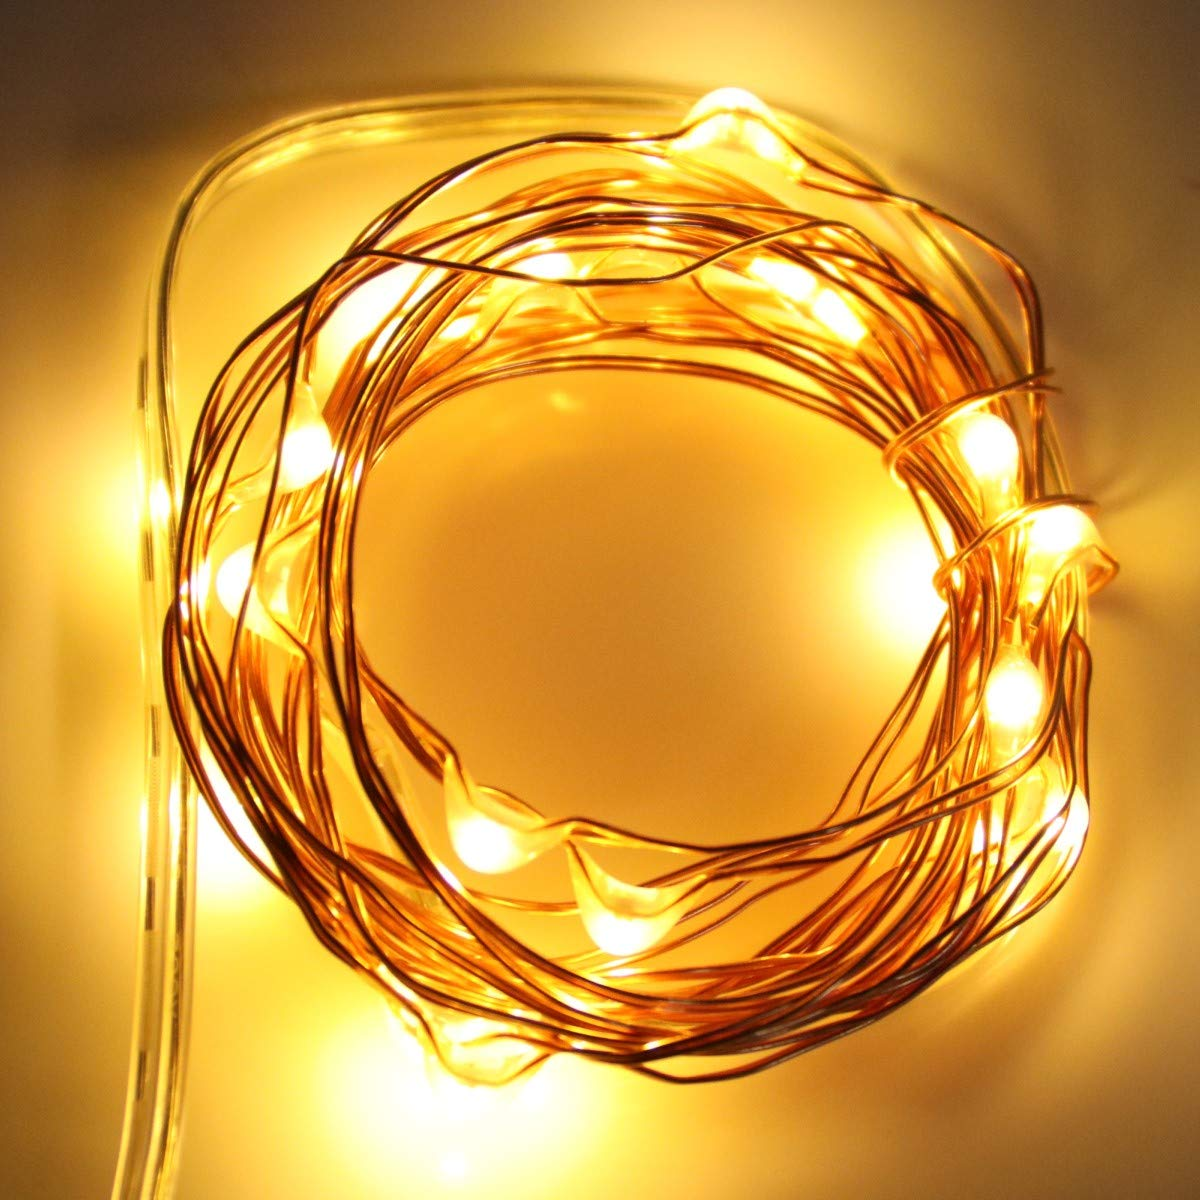 TenSteed Fairy String Lights, 2 Pack Fairy Lights Battery Operated 7.2 ft 20 LED Mini String Lights Waterproof Copper Wire Firefly Starry Lights for Wedding Bedroom Party Christmas Decor(Warm White)